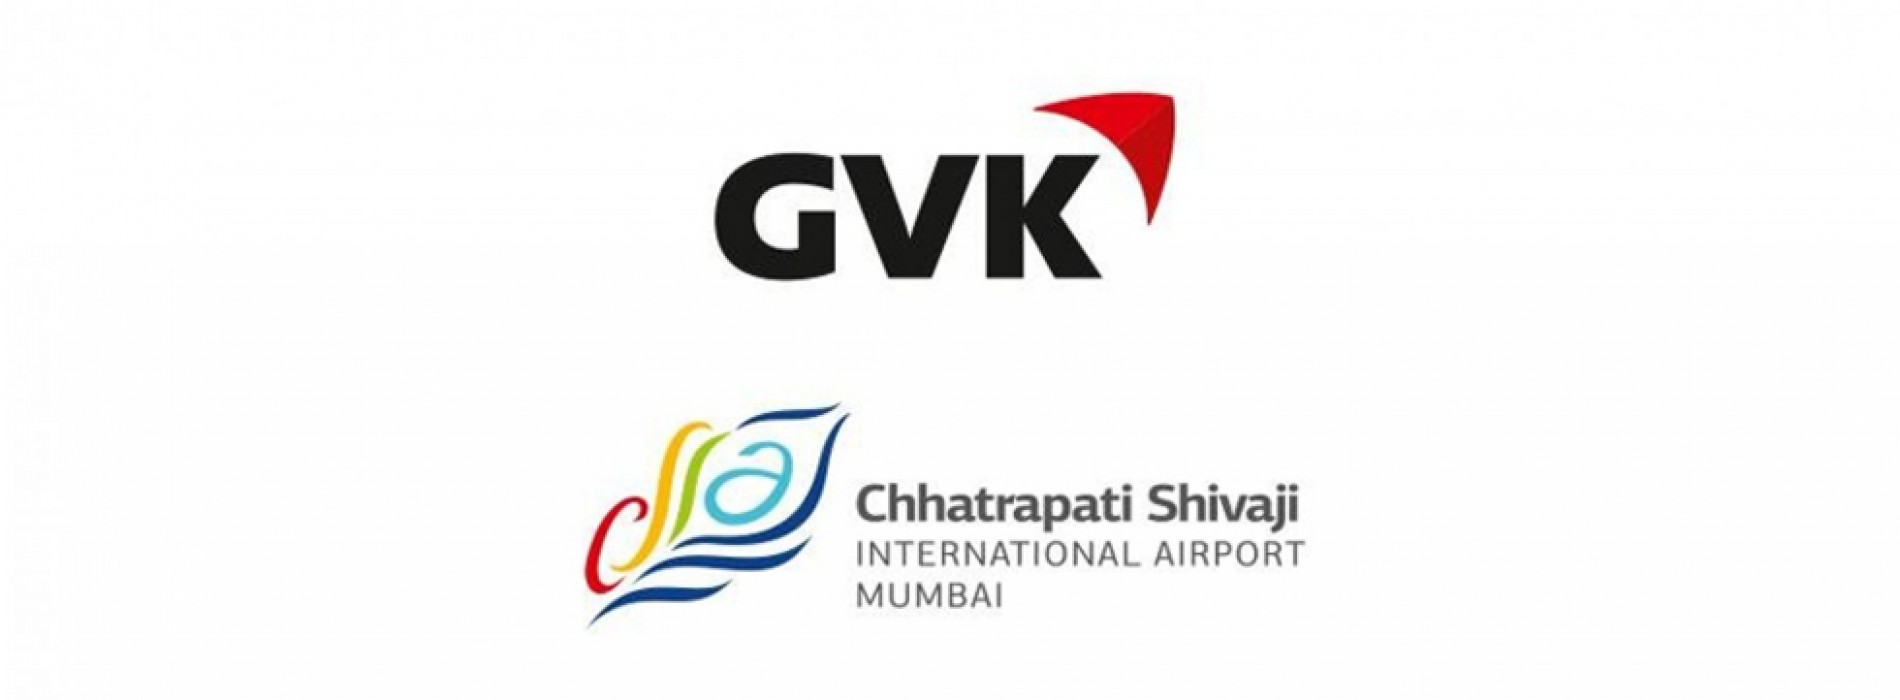 GVK Lounge bags 'World's Leading Airport Lounge – First Class' award at the World Travel Awards 2017